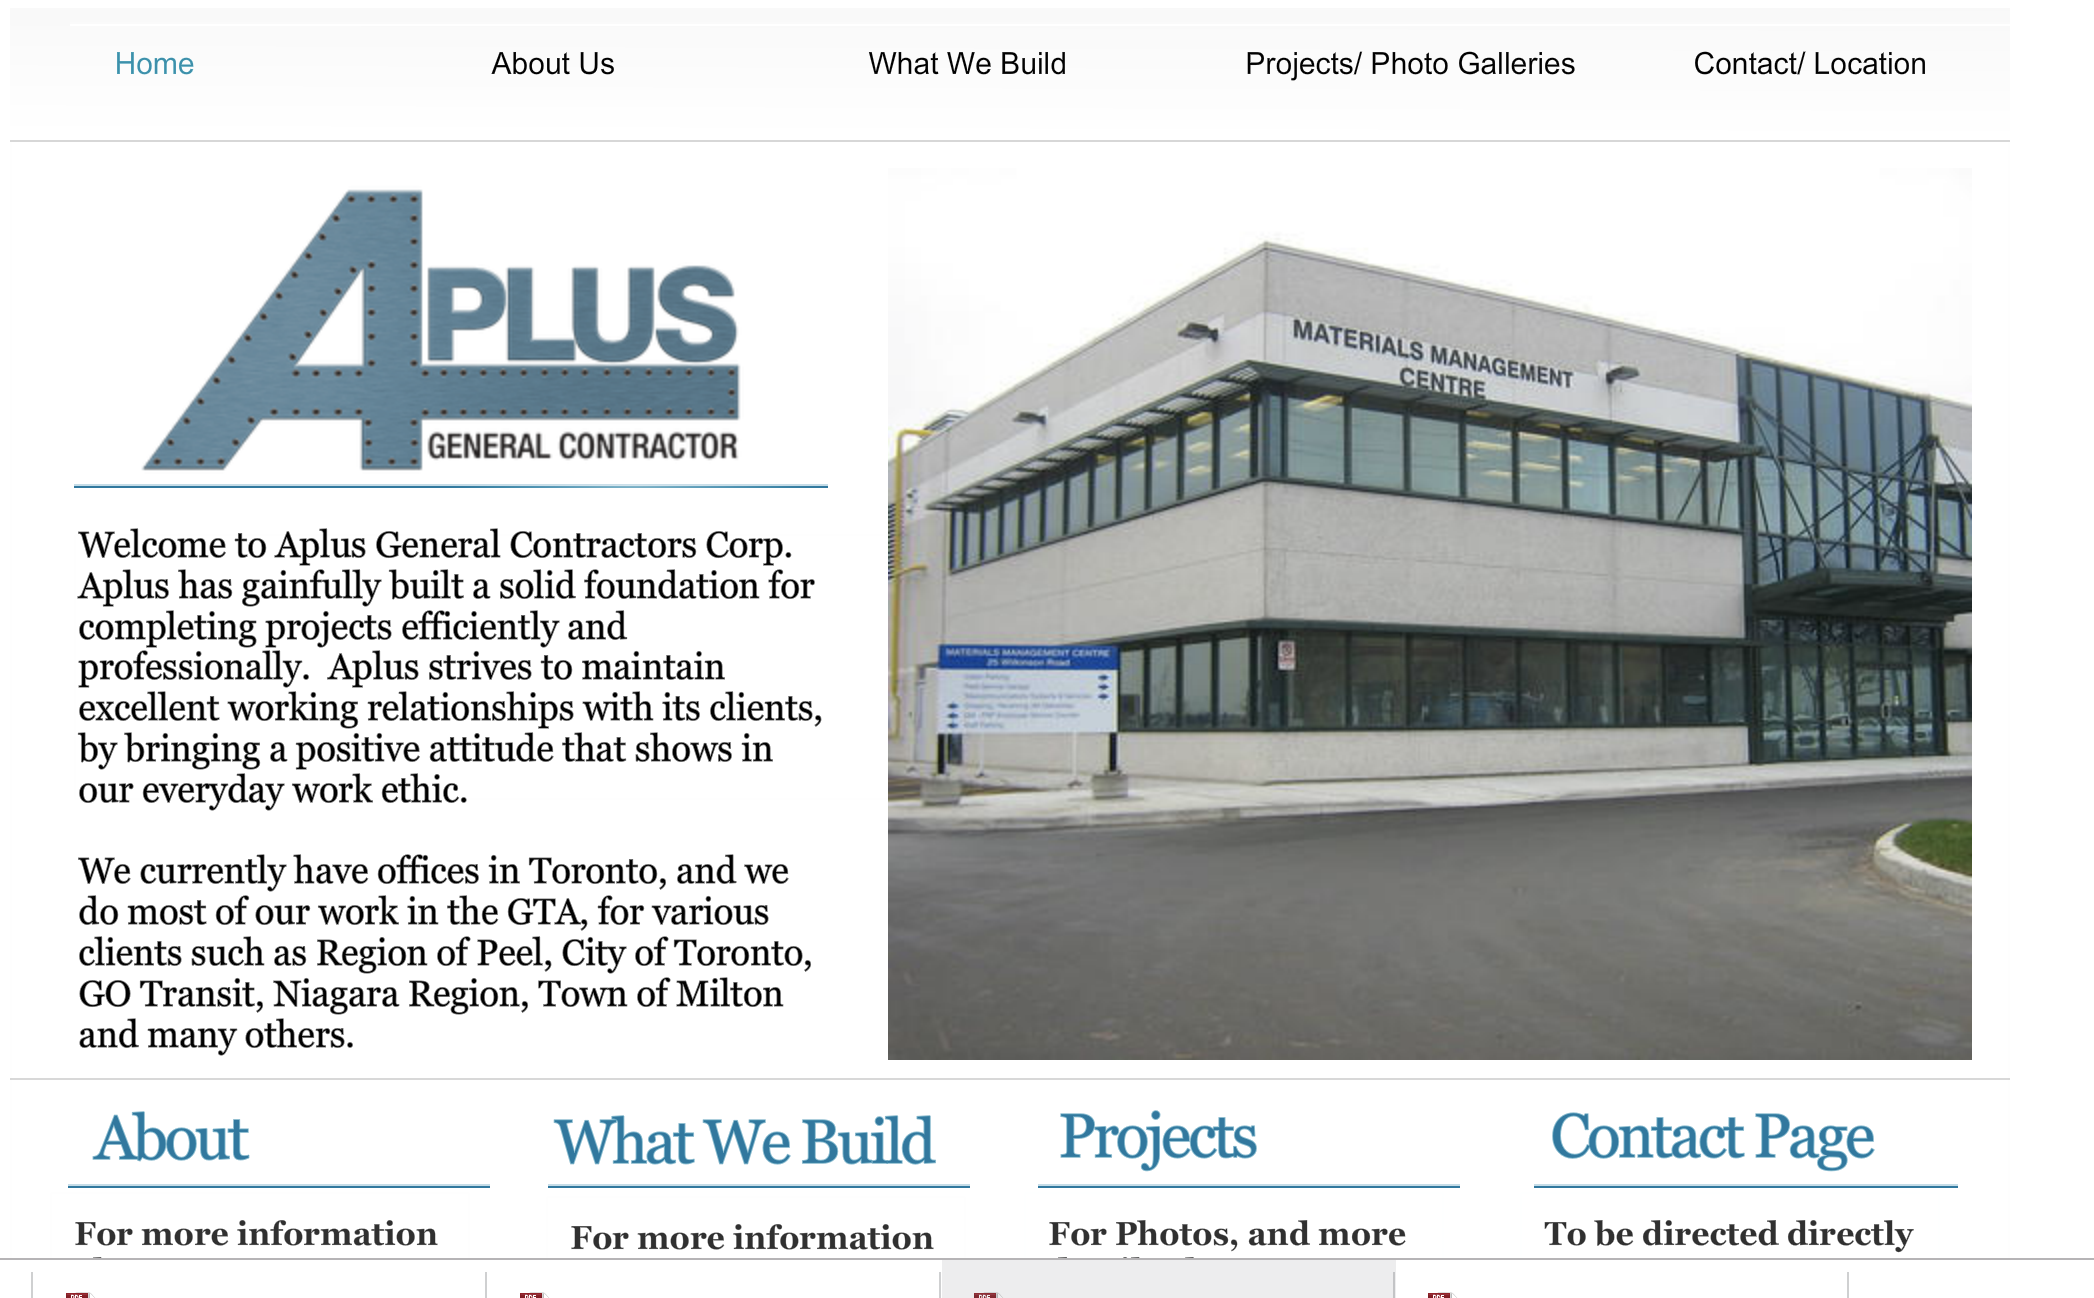 City of Toronto gives Aplus General Contractors a